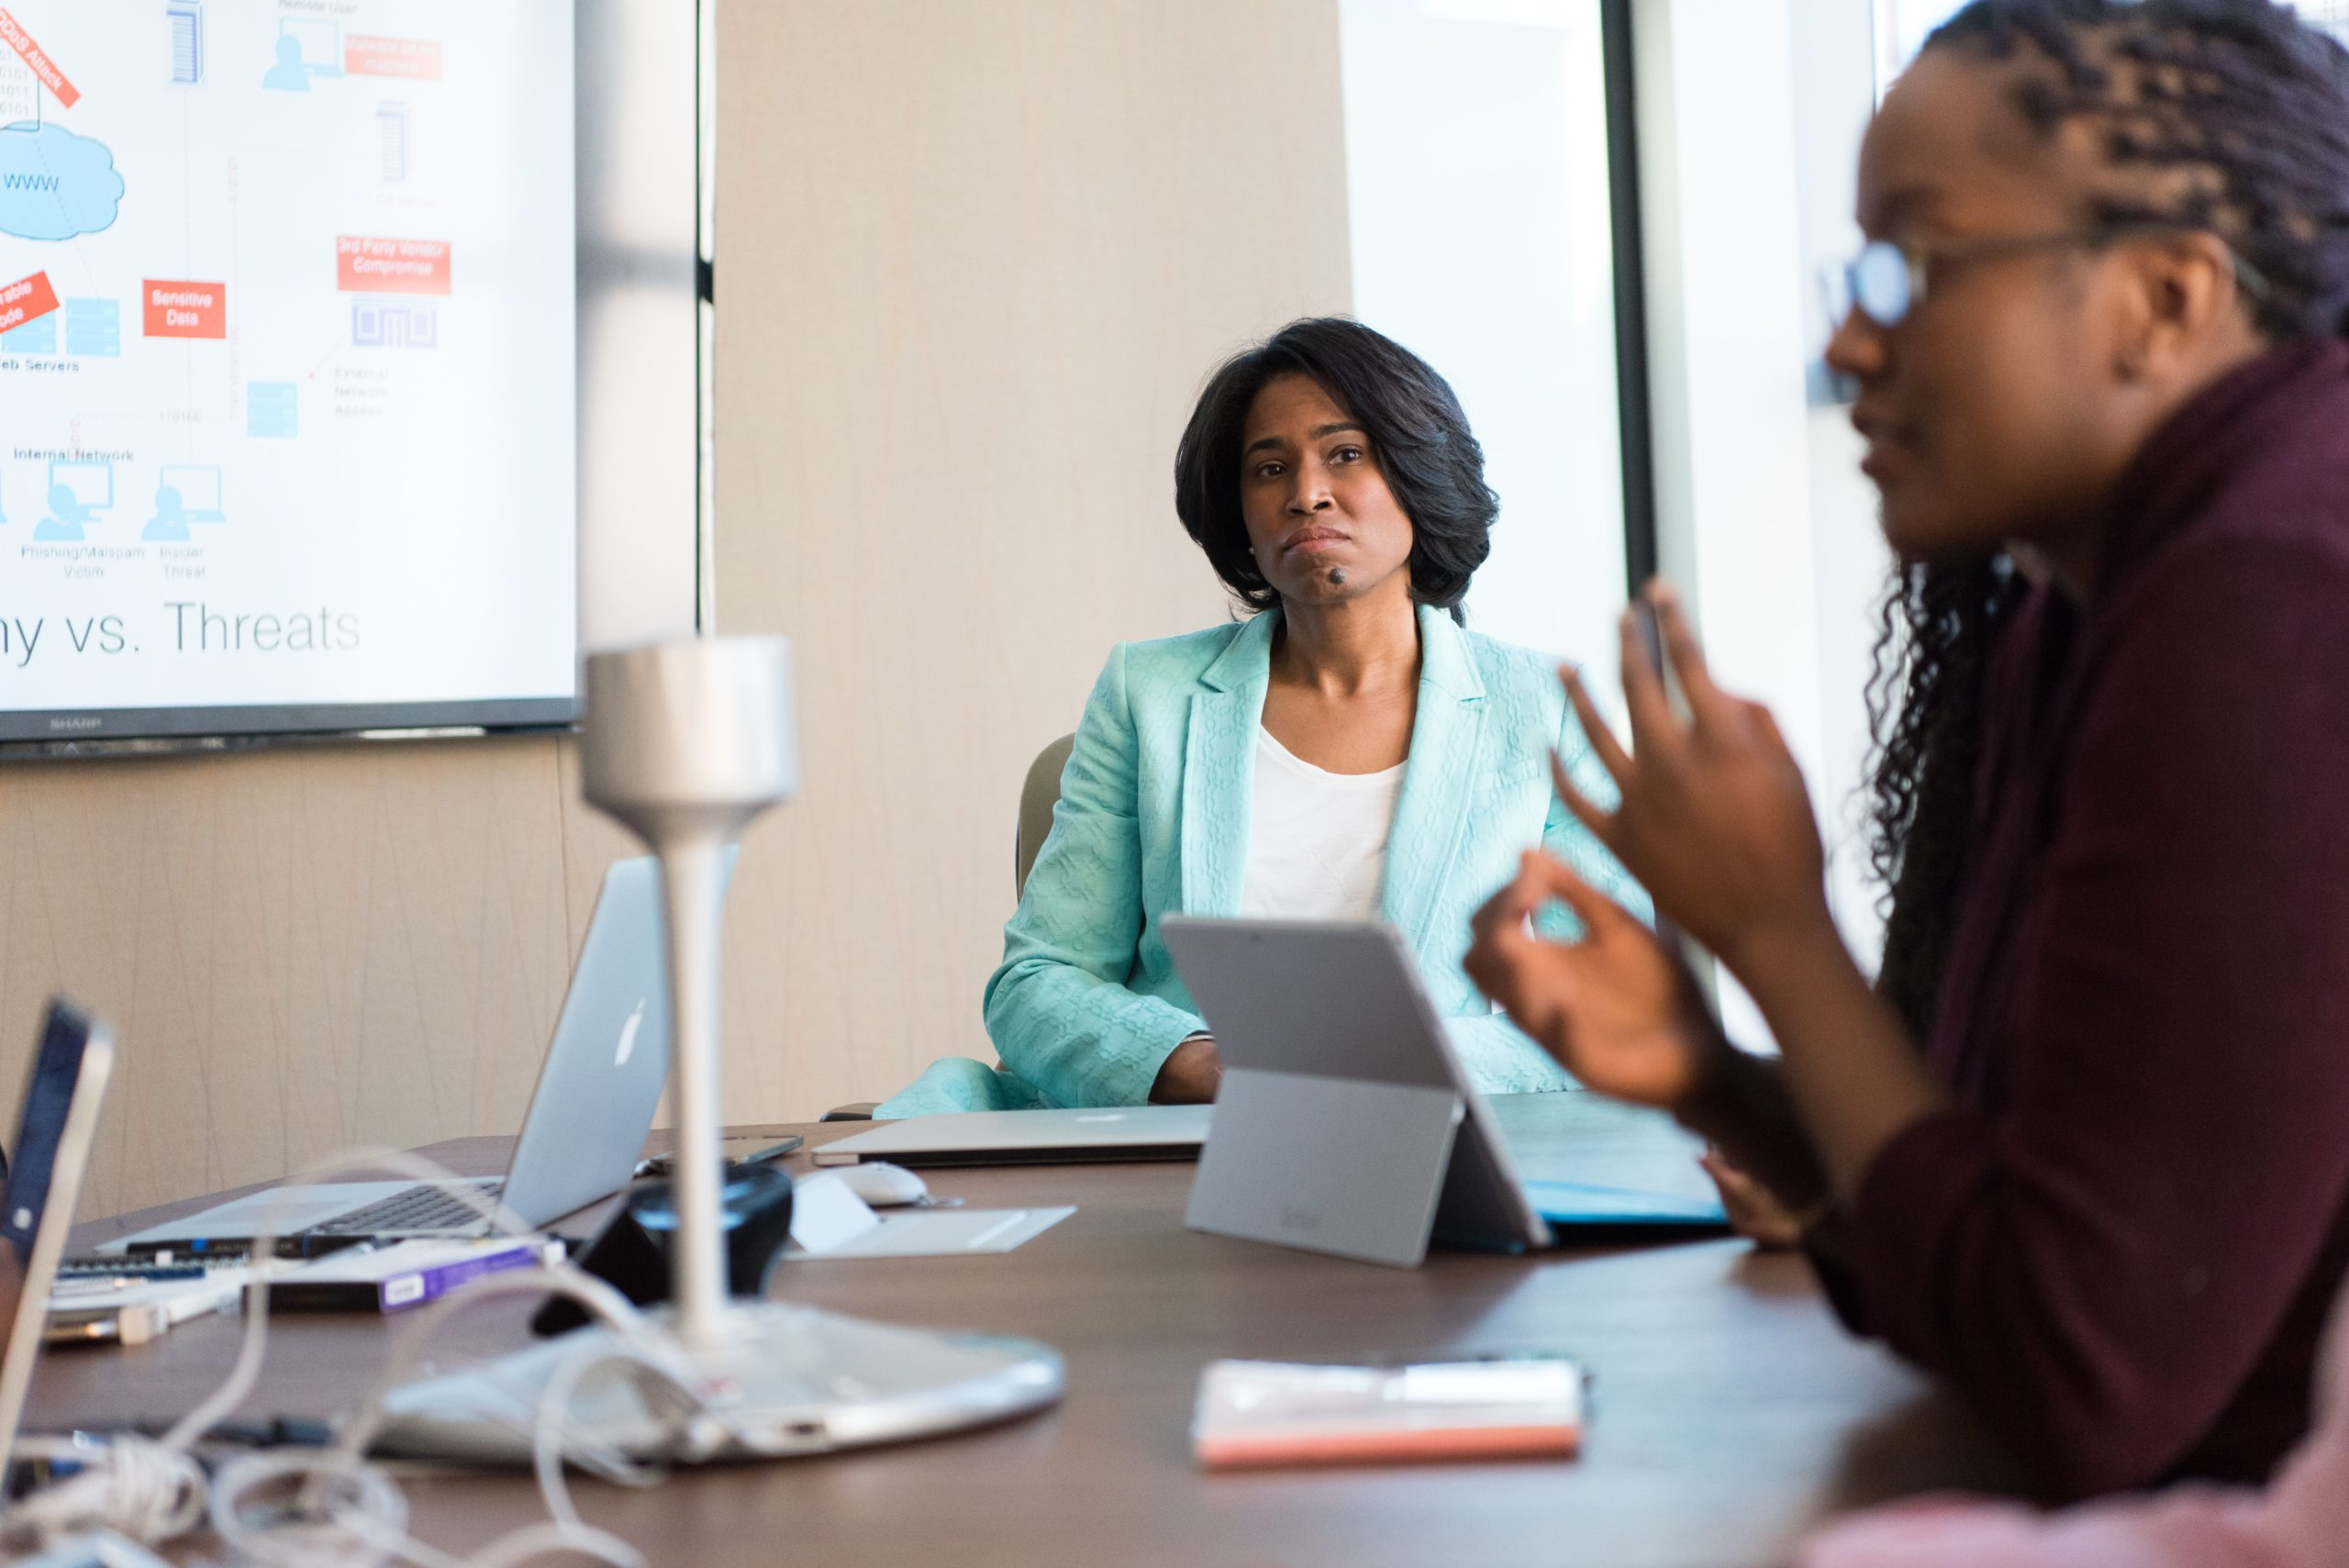 Business women making decisions in a conference room